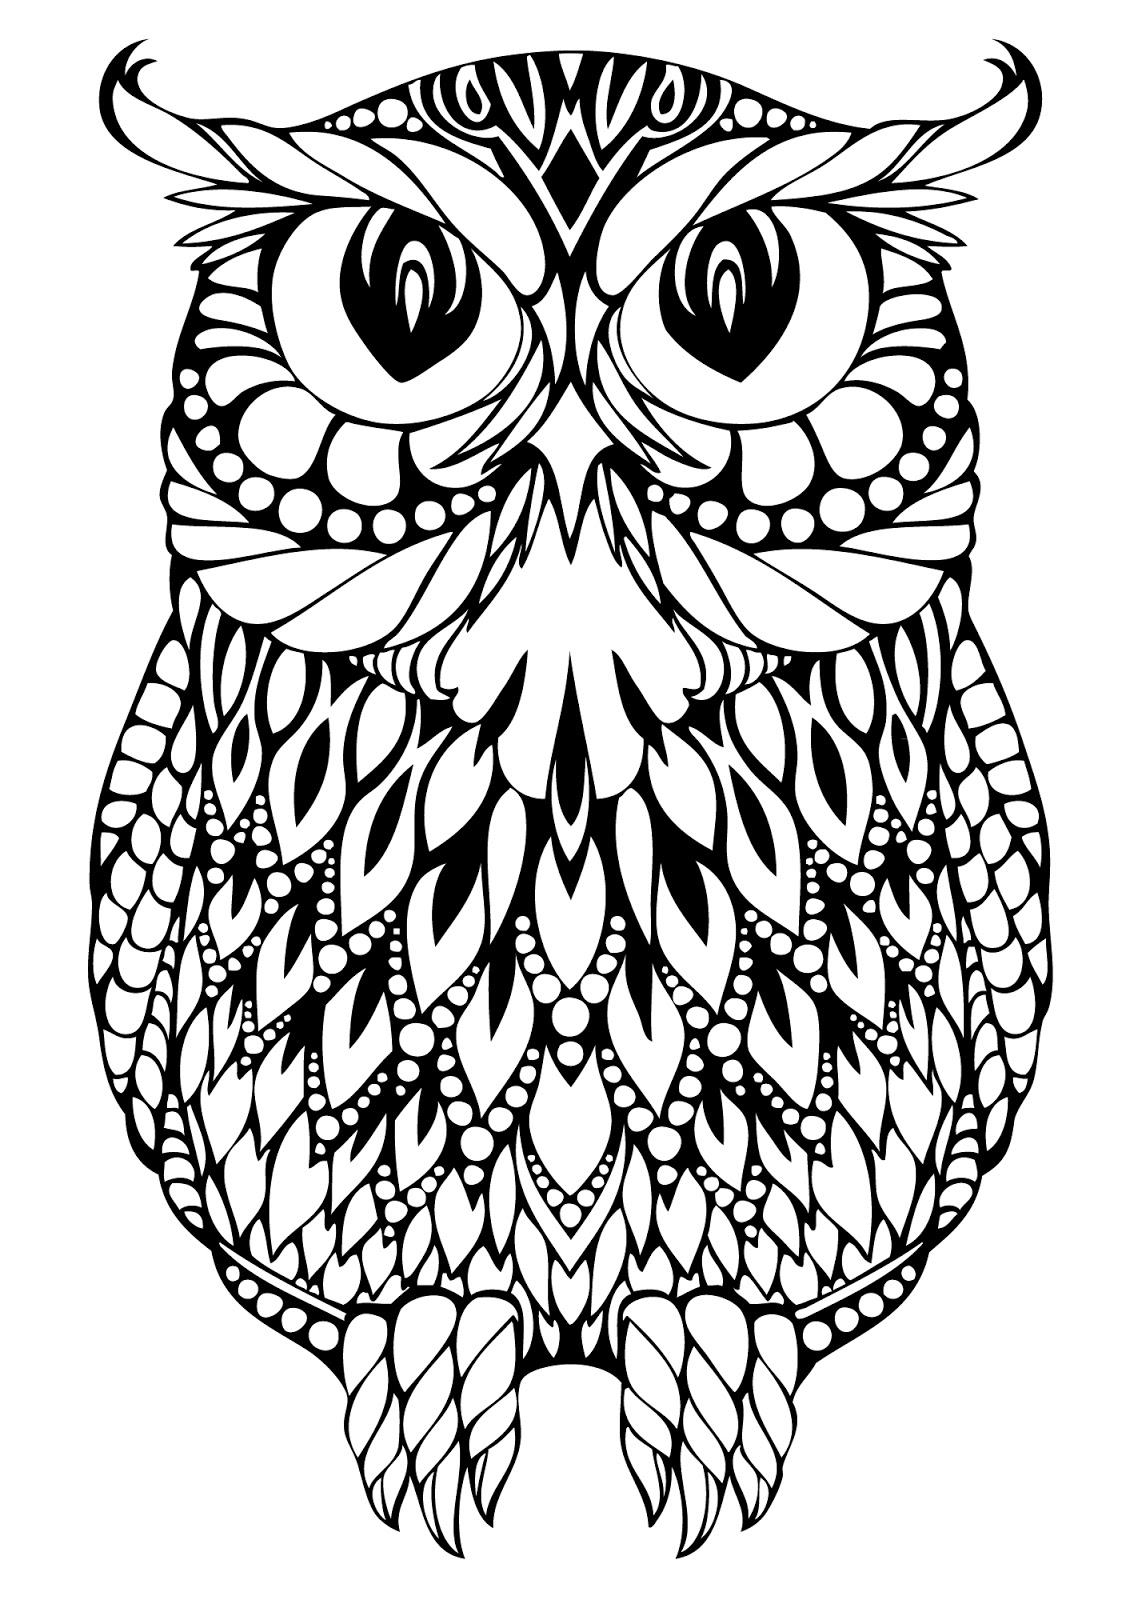 coloring pages for adults printable free printable abstract coloring pages for adults for pages printable adults coloring